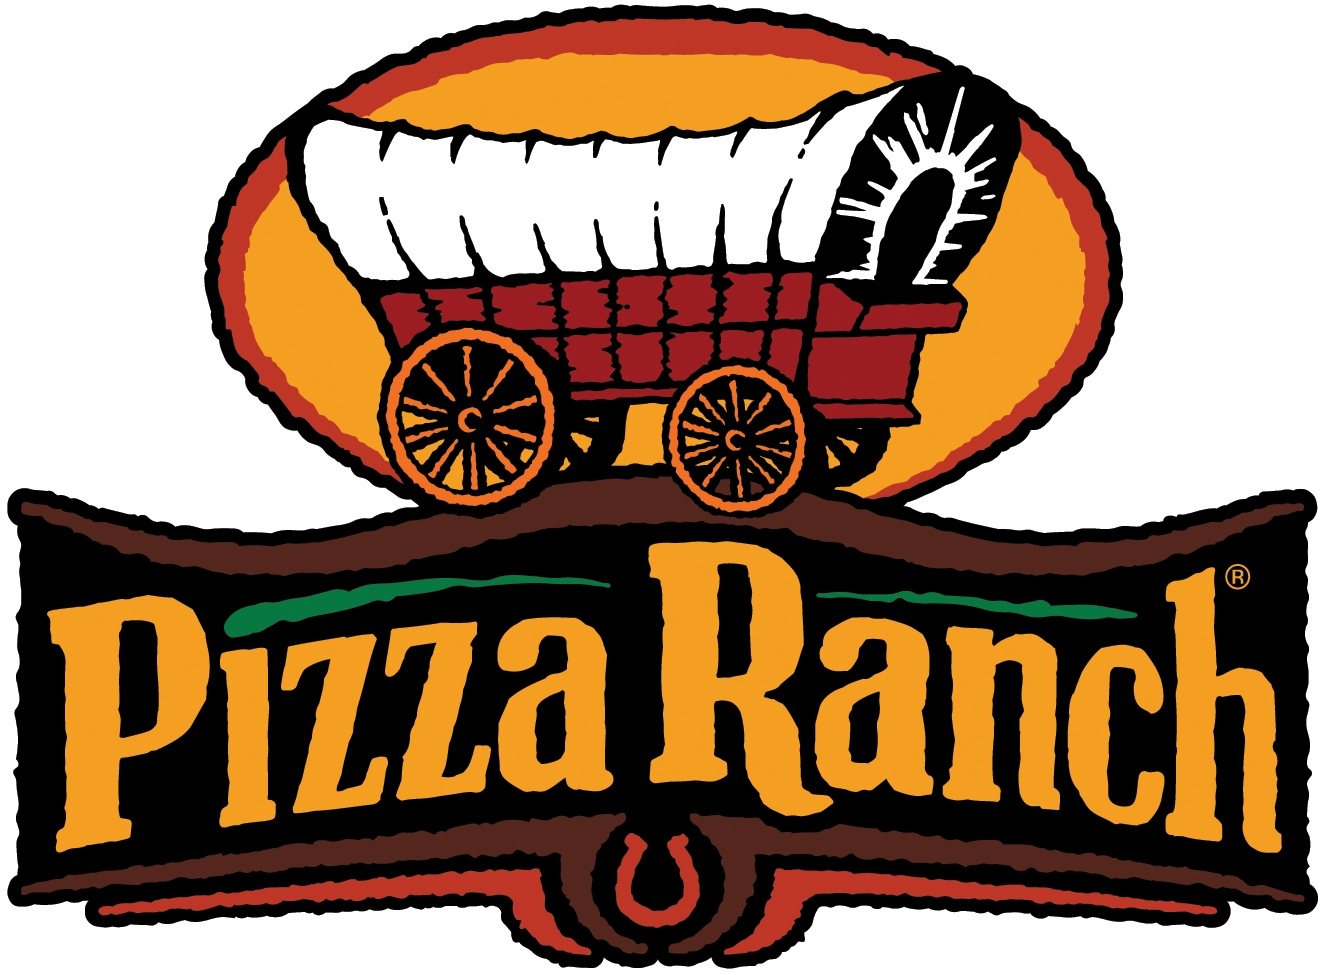 Jun 10,  · Description: Welcome to Pizza Ranch! Find a taste of the Old West-and everything you're craving-on our Buffet Your Way: classic and Ranch Favorite pizzas, the Country's Best Chicken®, and sweet Cactus Bread®. Find us nearby the Badlands Motor Speedway and the Brandon Valley Performing Arts Center TripAdvisor reviews.